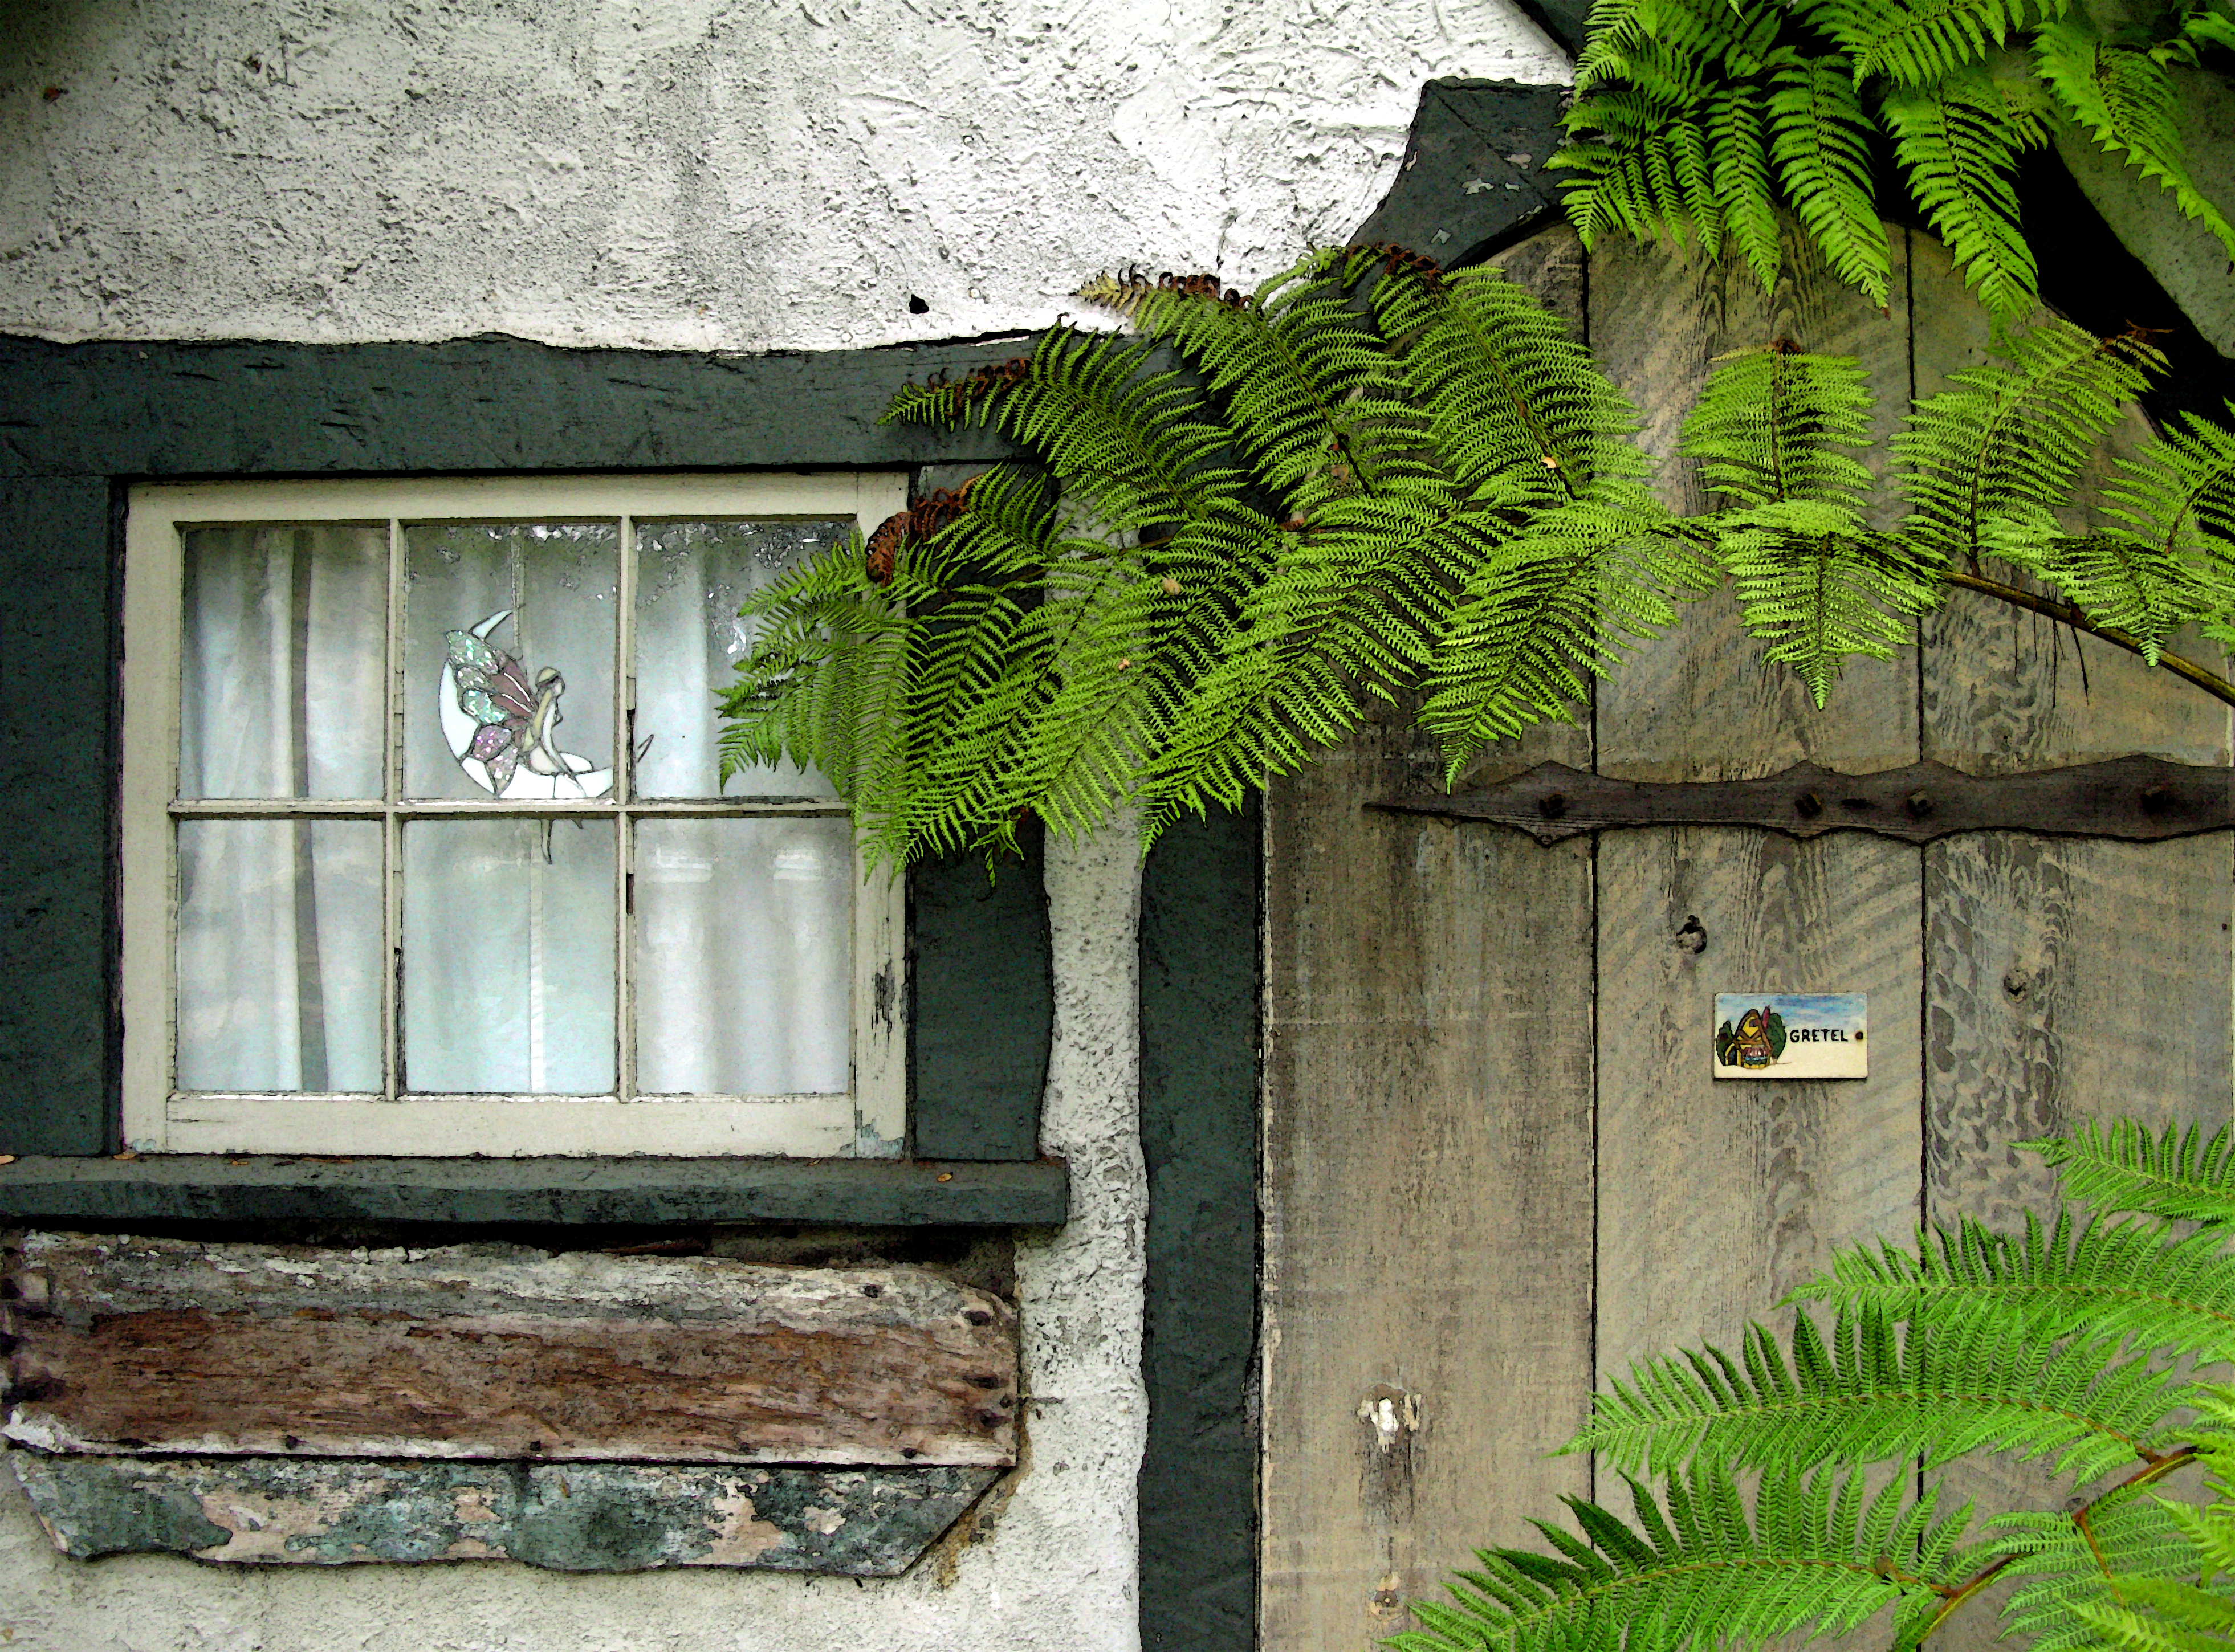 HUGH COMSTOCK'S FAIRYTALE COTTAGES BY THE SEA | Once upon a